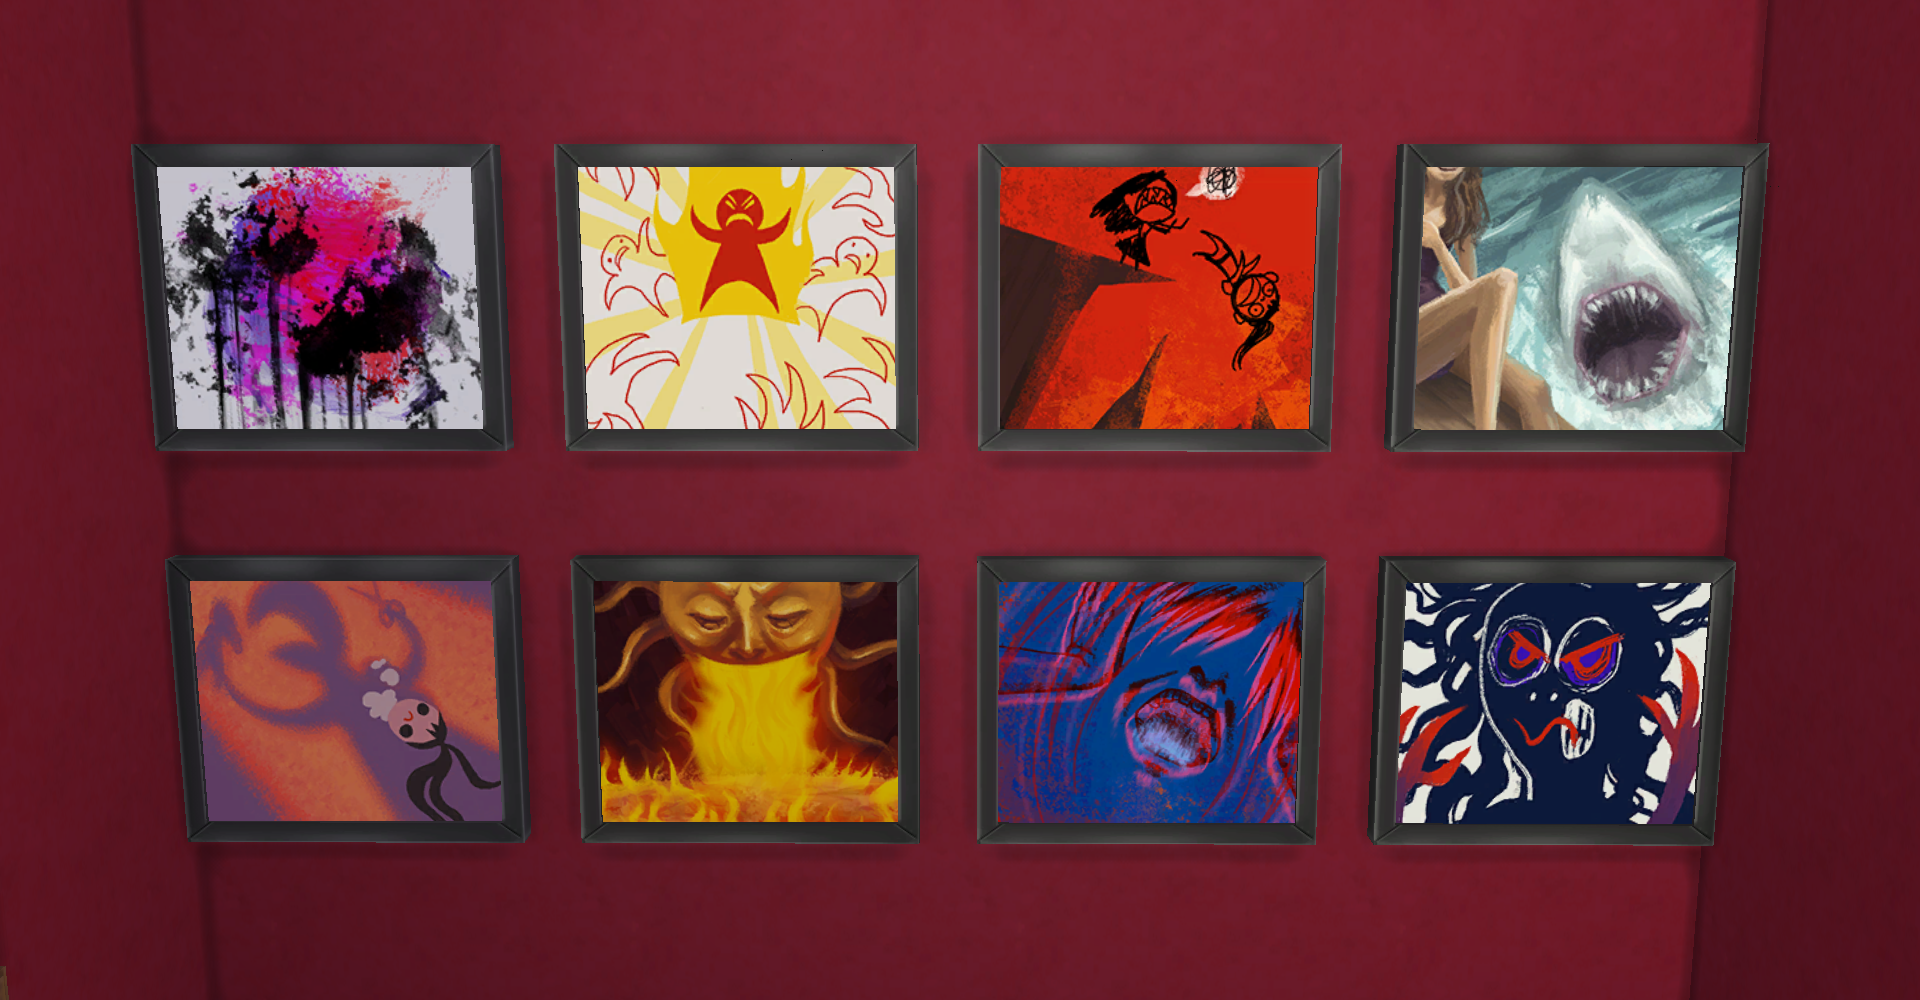 Sims 4 Angry Paintings